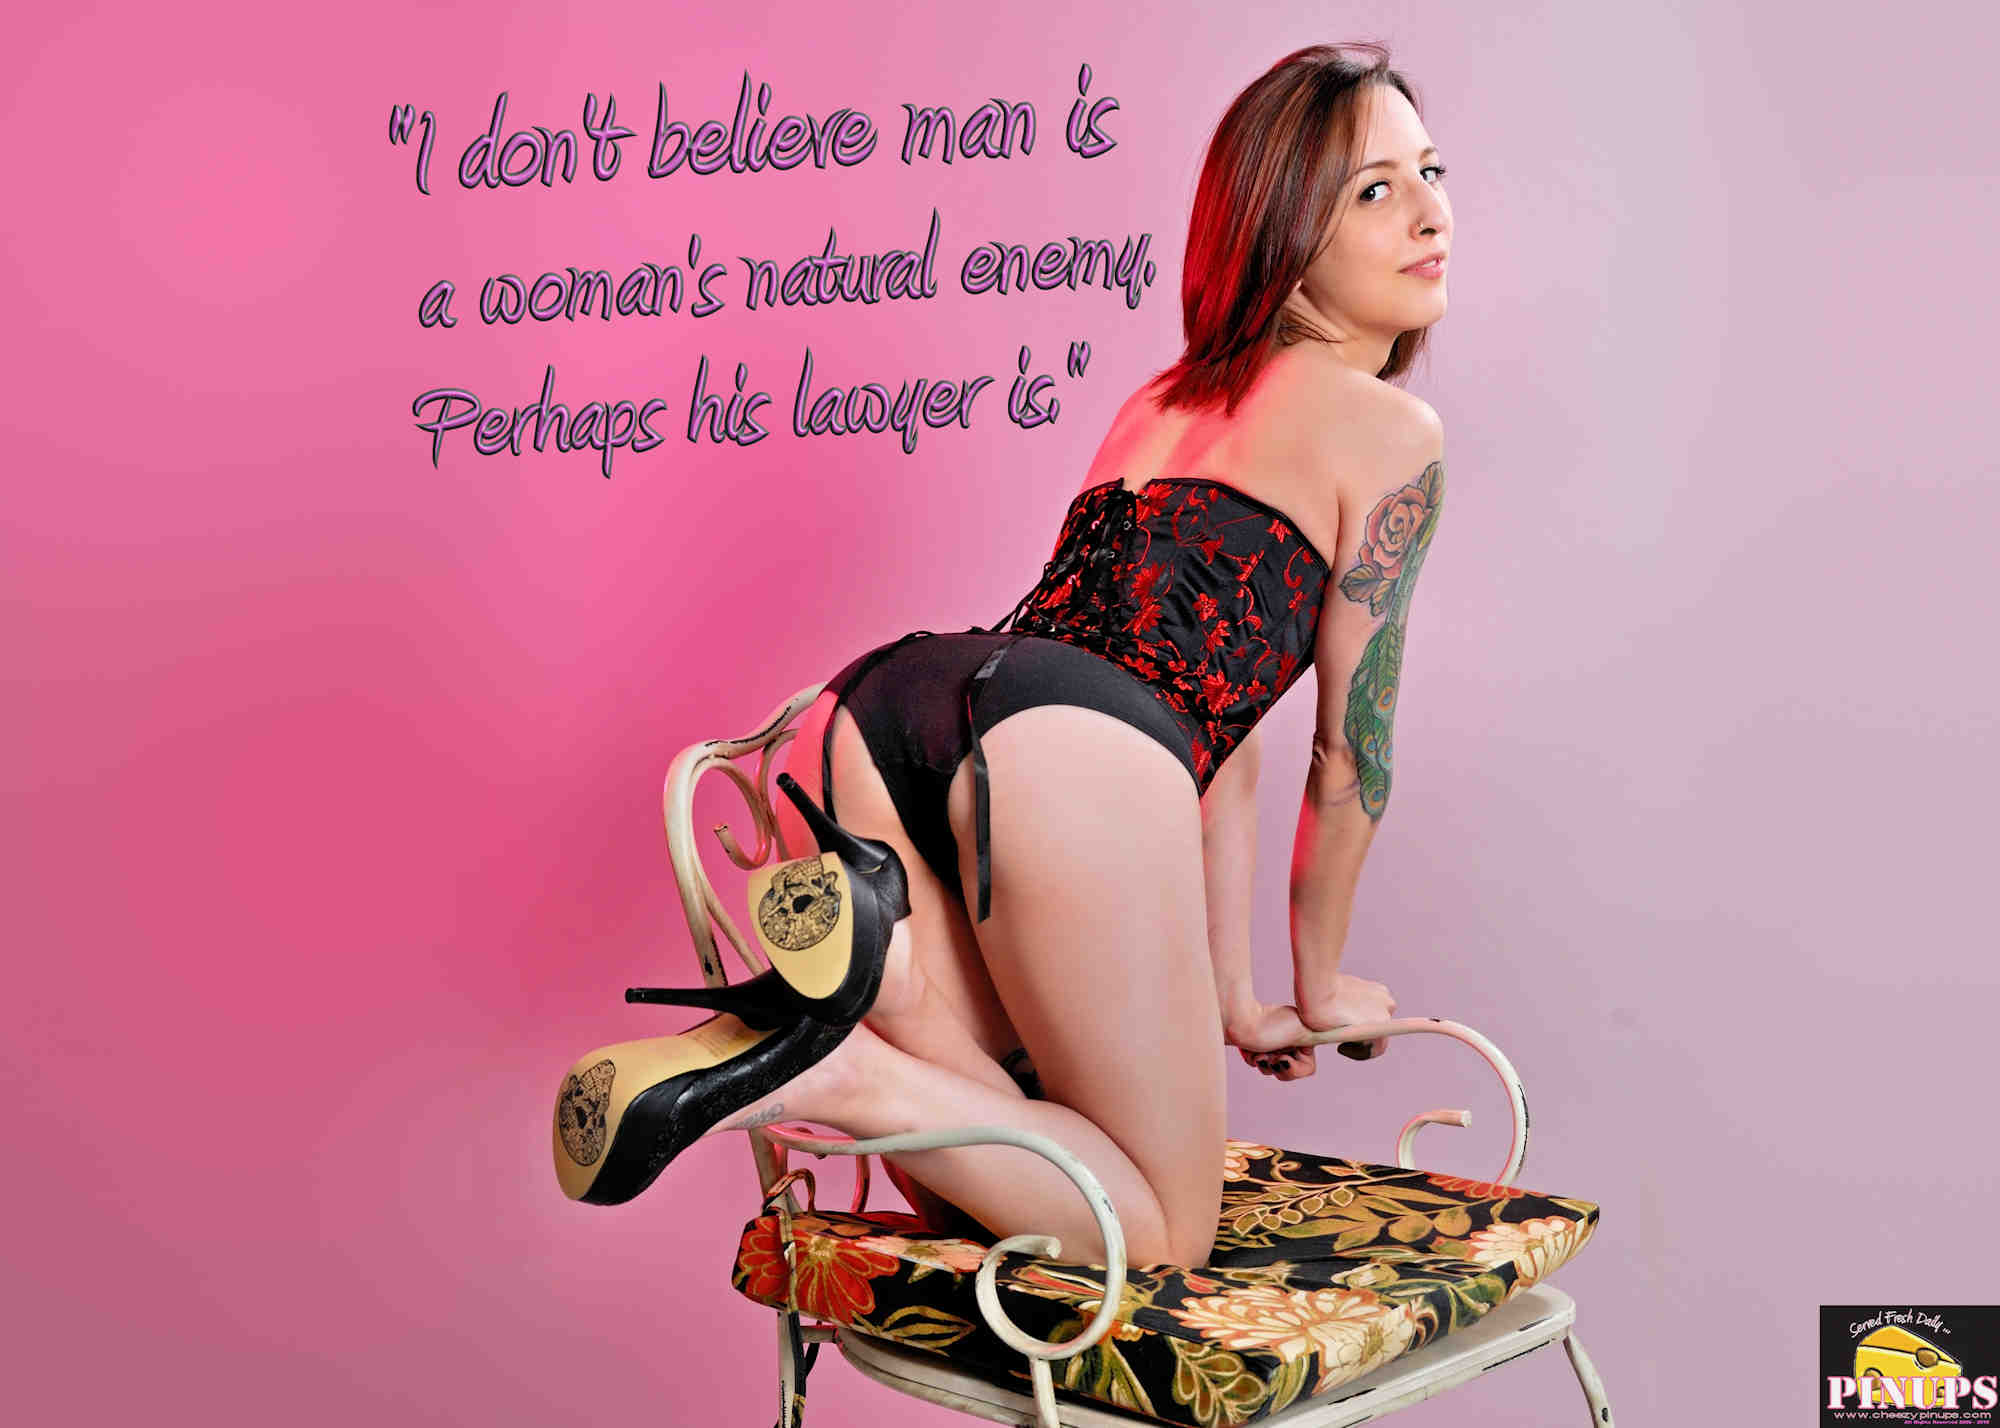 "Cheezy Pinup - October 6, 2018 ""I don't believe man is a woman's natural enemy. Perhaps his lawyer is."" - Shana Alexander Model: Hazel"